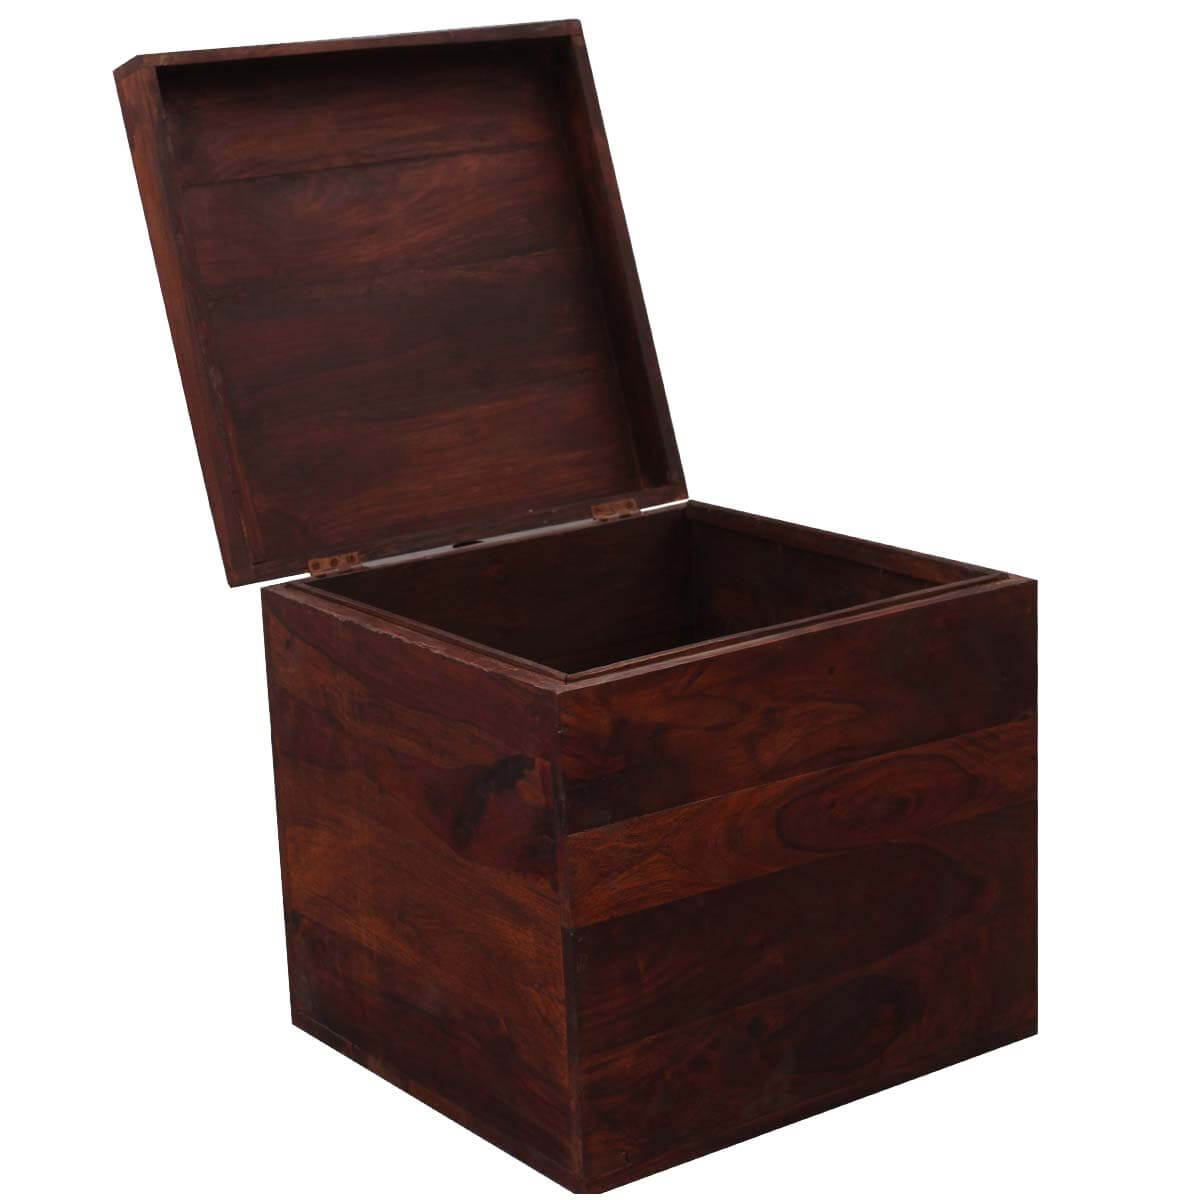 Santa Fe 18 Quot Cube Solid Wood Storage Box End Table